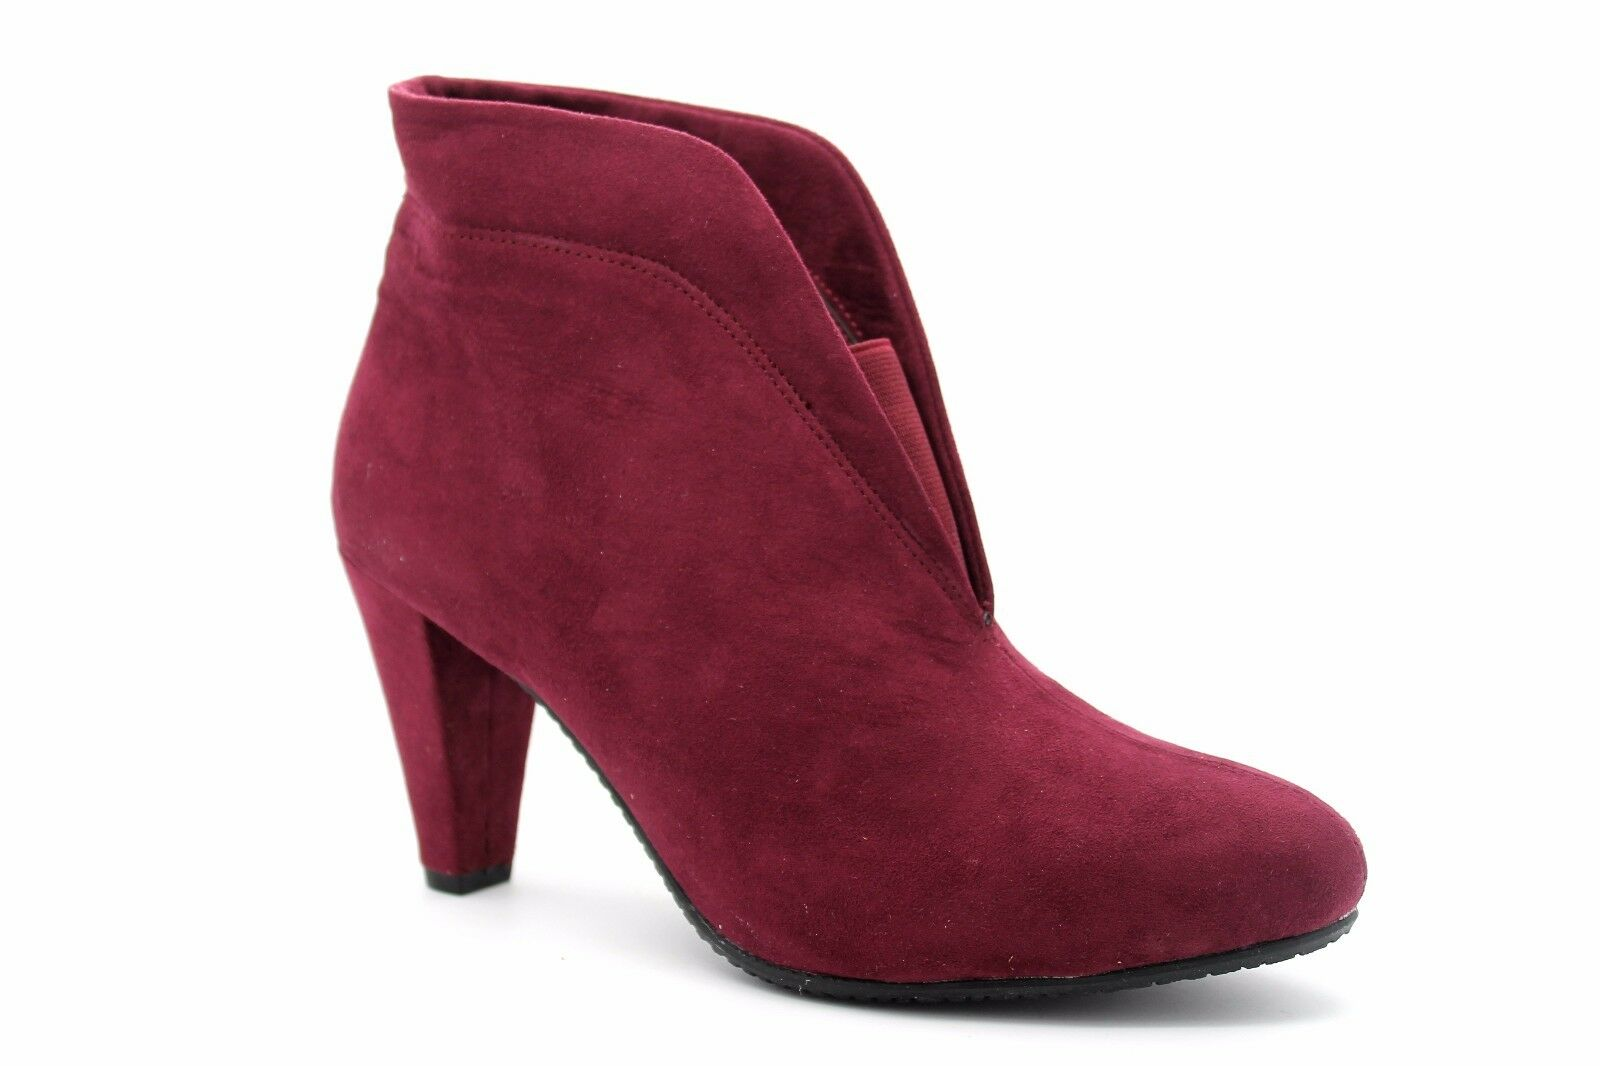 Wallis Womens UK 5 EU 38 Wine Red Faux Suede 3 Heel New Ankle Boots